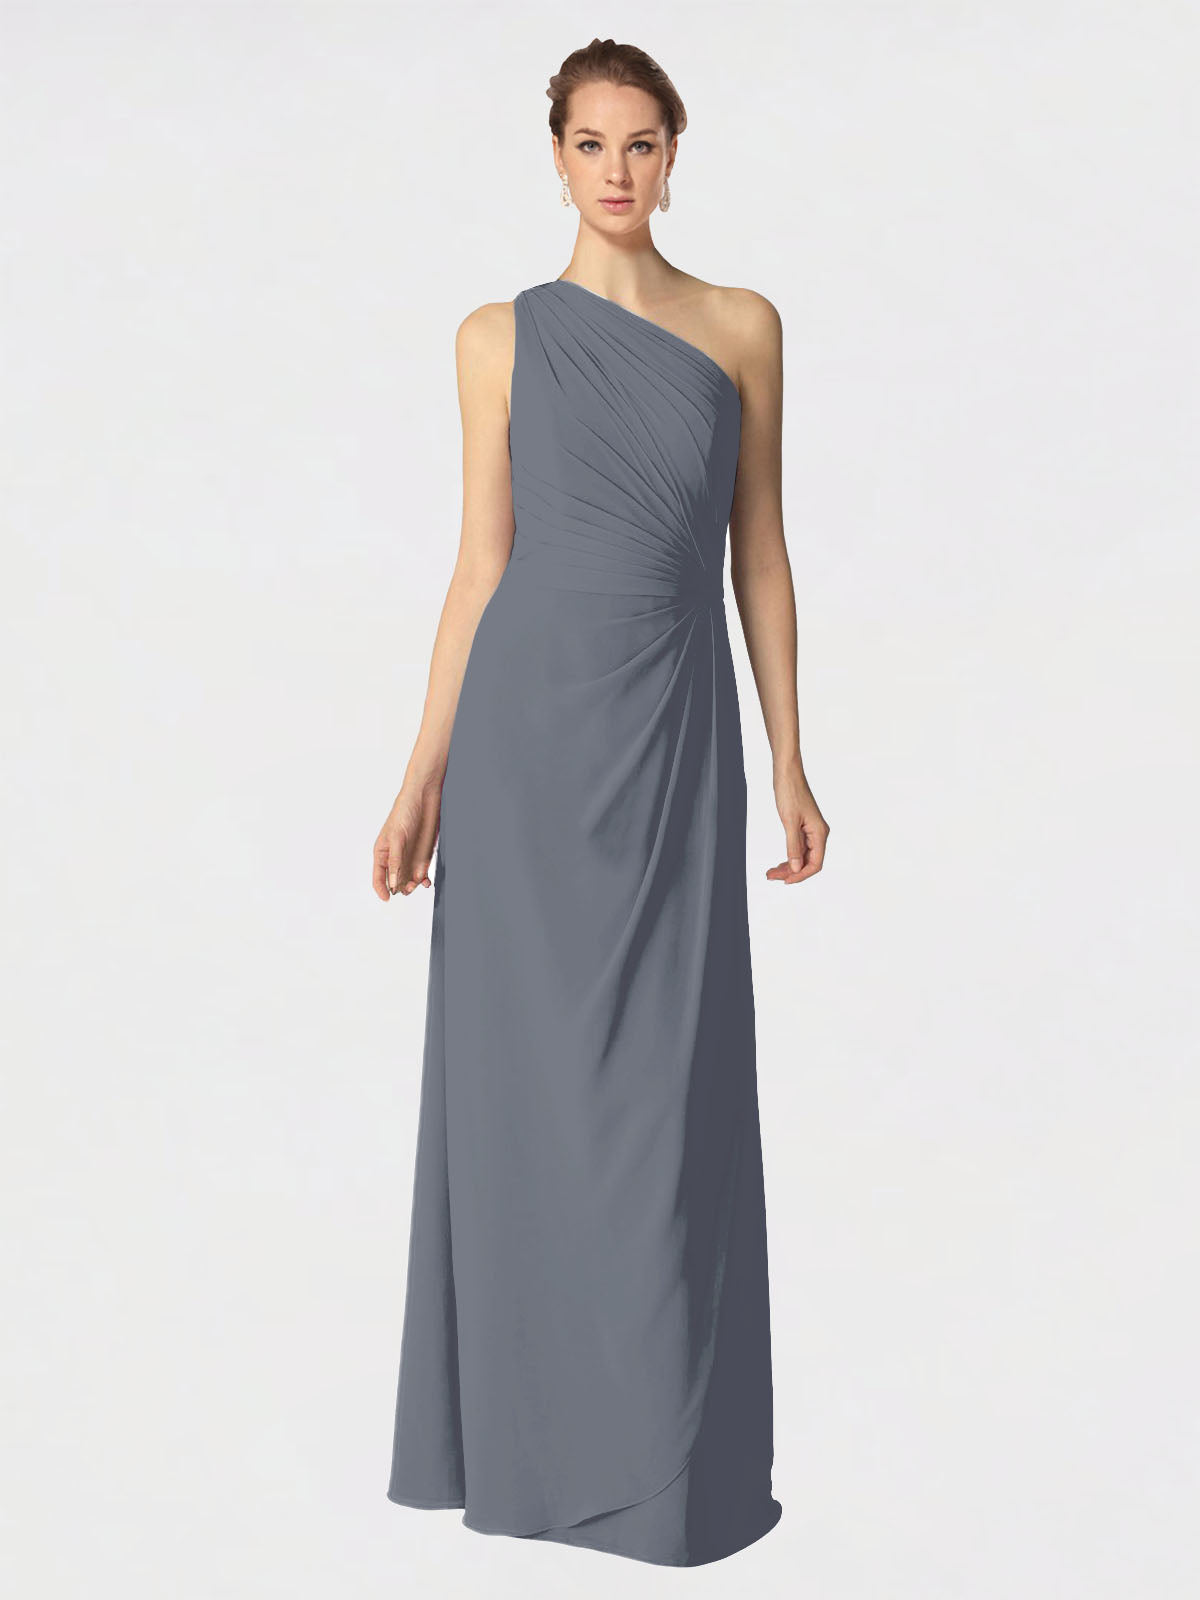 Long A-Line One Shoulder Sleeveless Slate Grey Chiffon Bridesmaid Dress Aurora